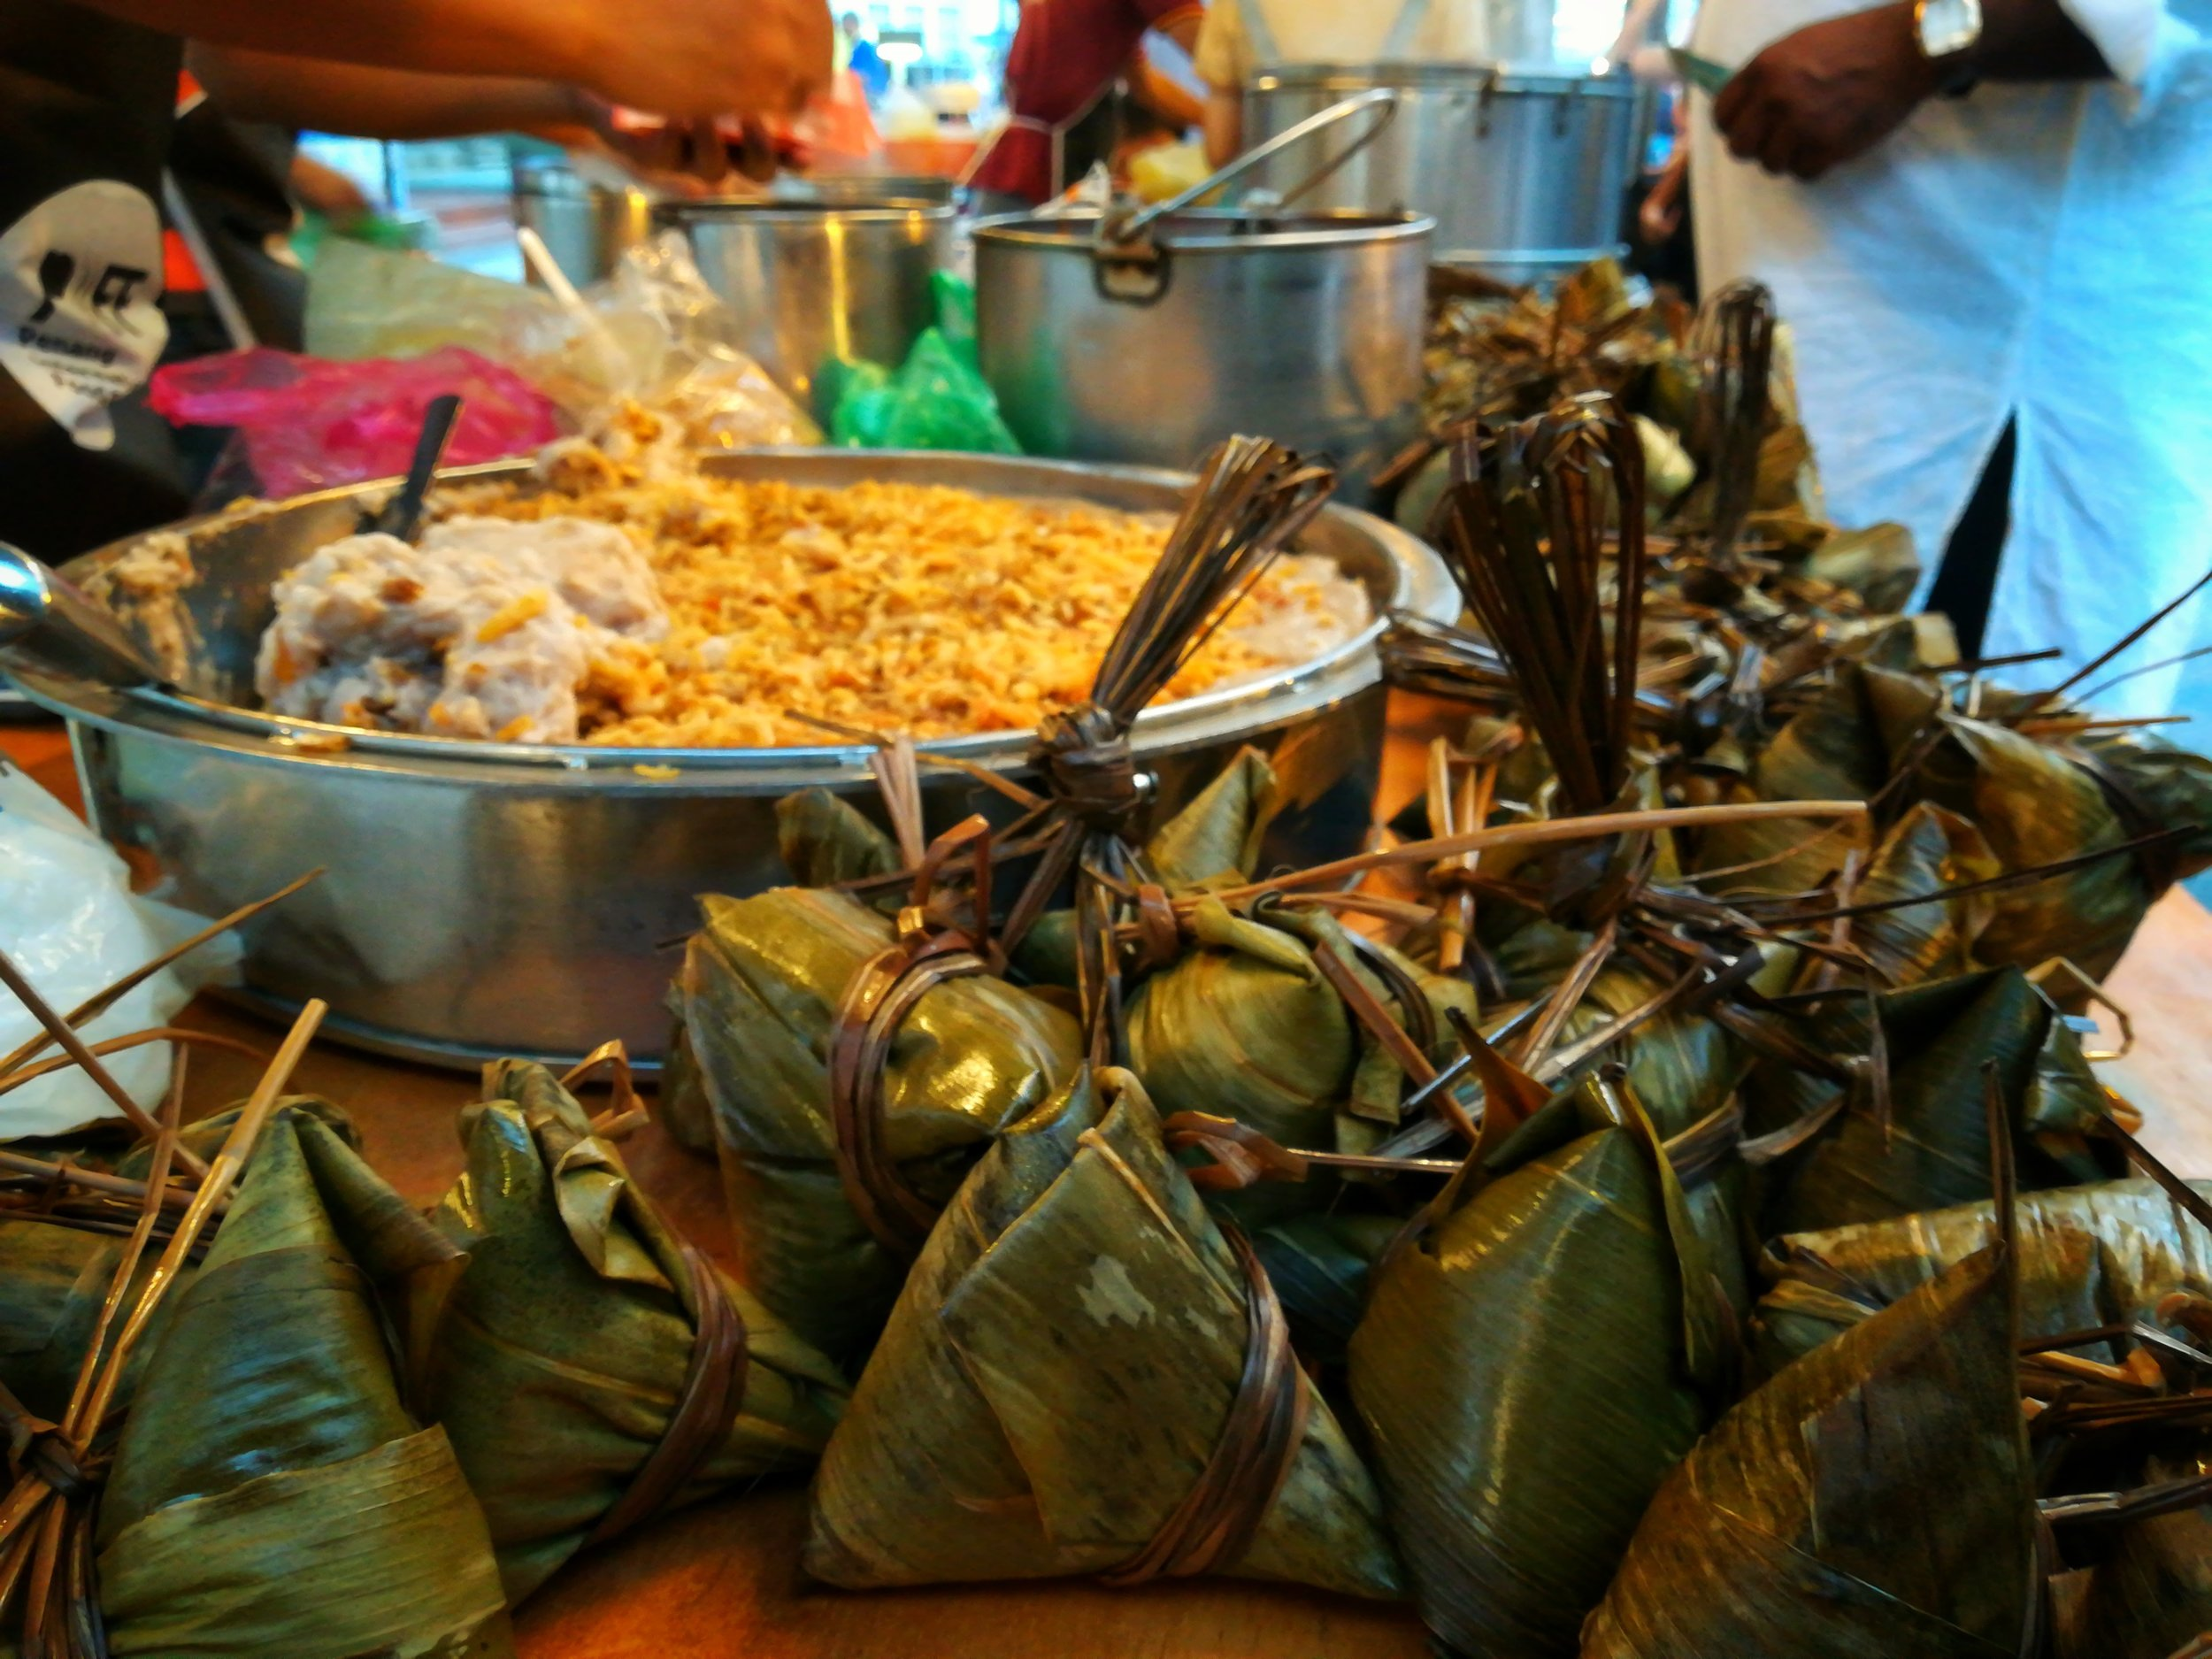 Bak Chang/Lo Mai Kai or Zongzi: The Bak Chang (which is what we call it in Penang) has a dizzying number of variations in South East Asia. In general, it is steamed glutinous rice wrapped with bamboo or banana leaf. There's usually a filling of roasted or steamed pork, mushrooms and salted egg yolk. The Malays actually have a similar snack that uses glutinous rice but with a filling of palm sugar and shredded coconut. More than likely inspired by Chinese traders and the Straits Chinese community.